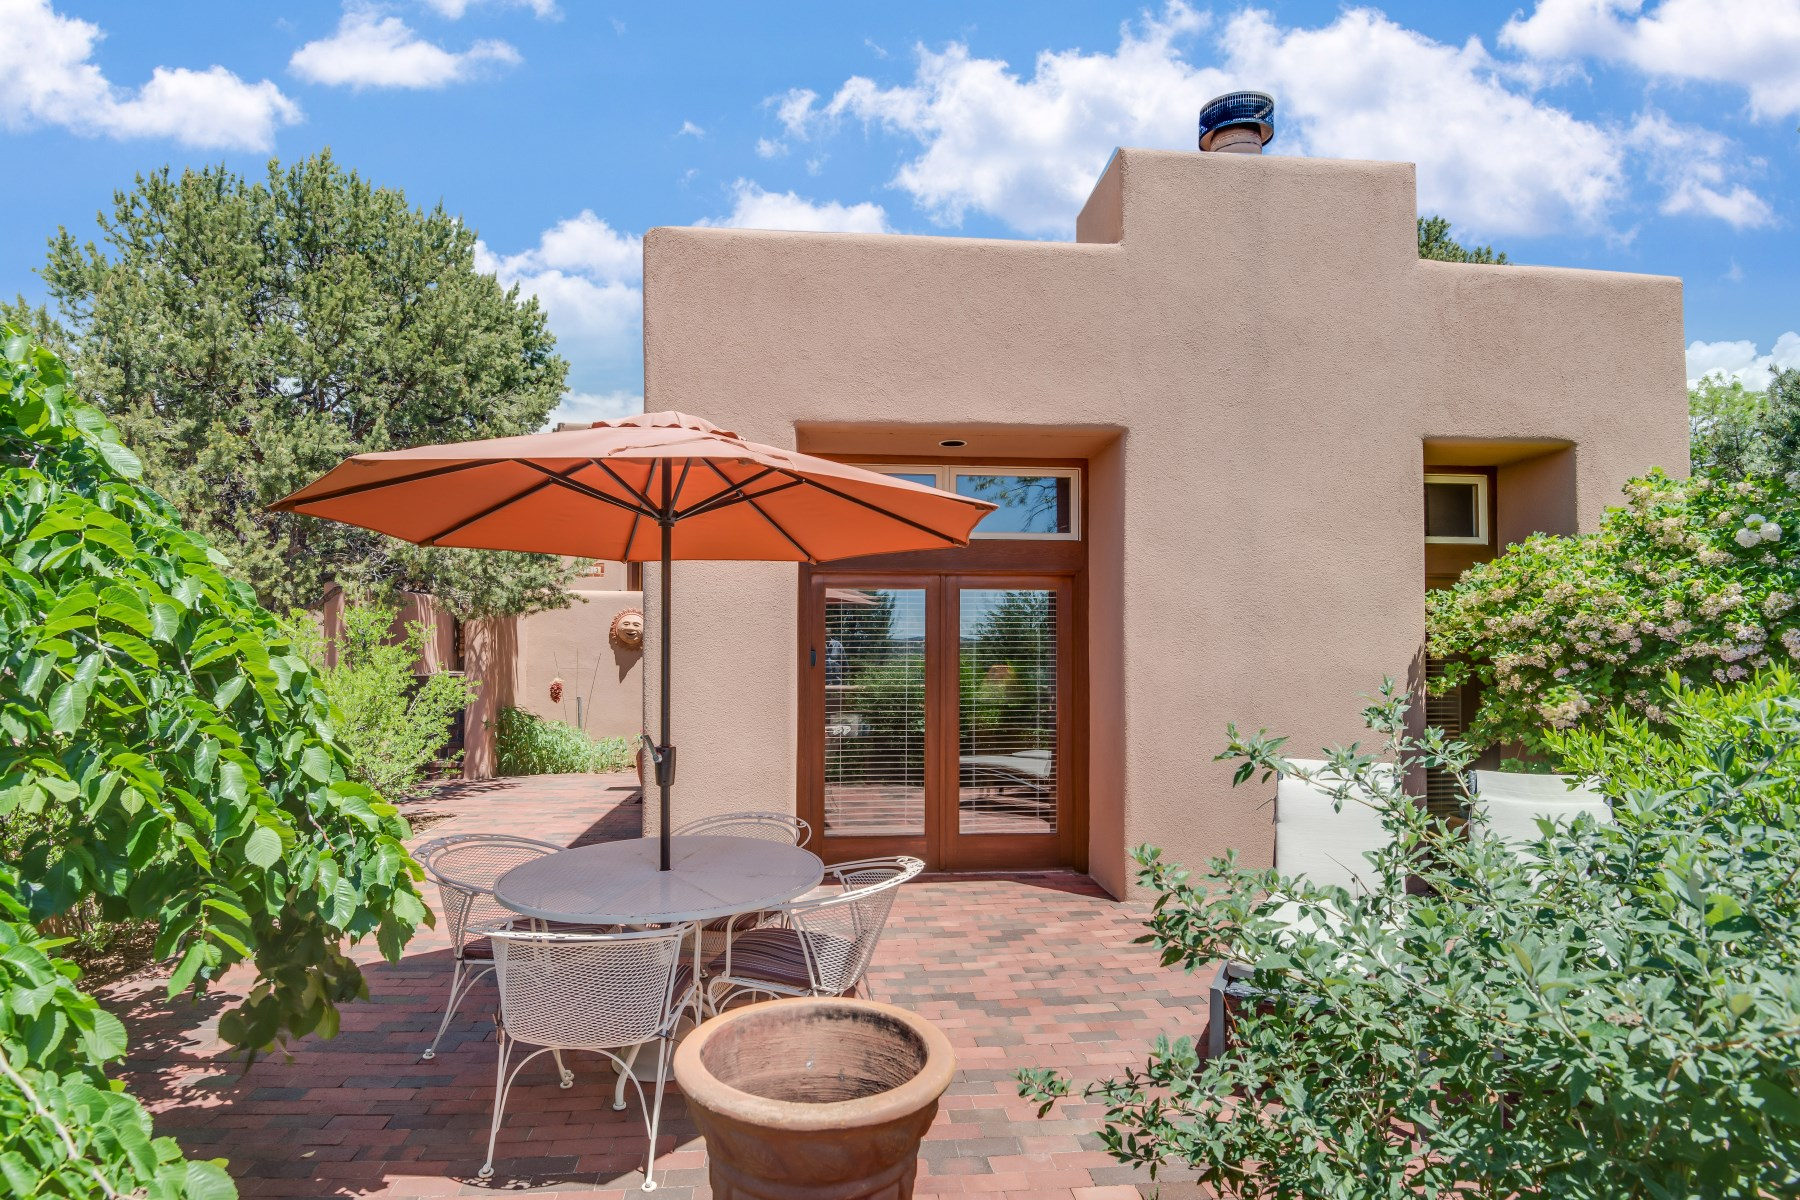 Condominium for Sale at 213 Pueblo de Cielo Santa Fe, New Mexico 87506 United States